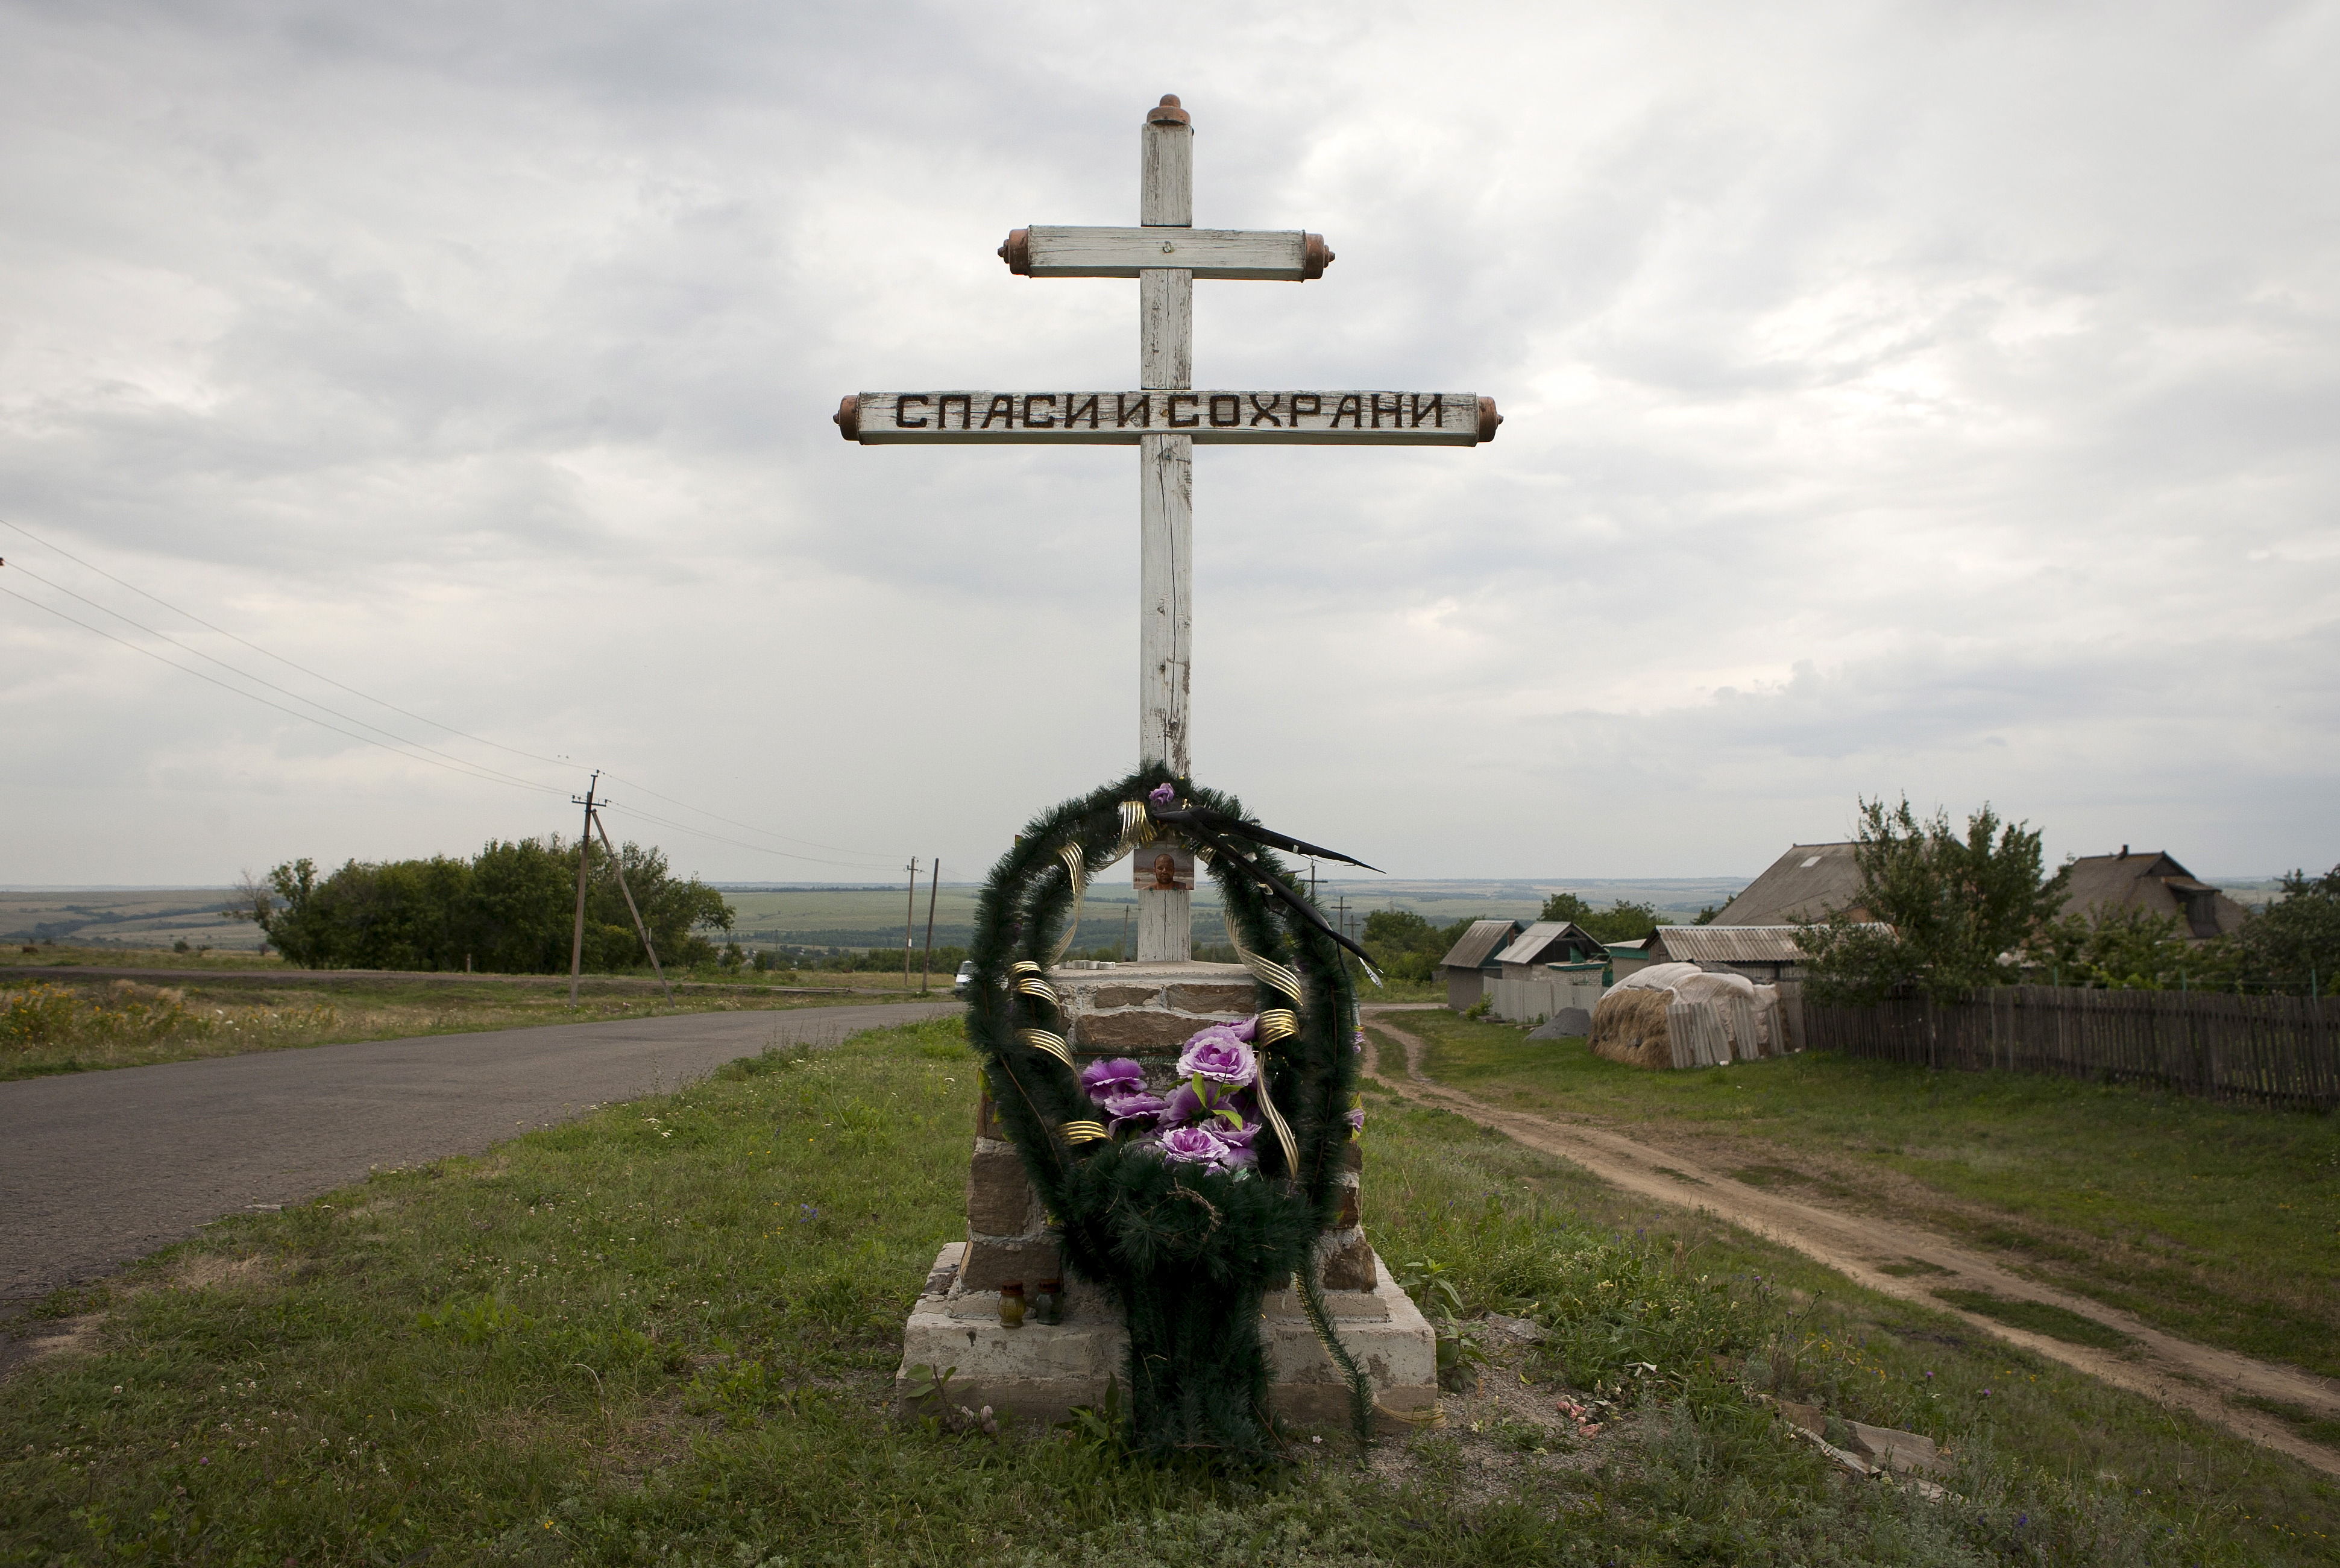 A wreath is placed on a cross with an inscription that reads  Save and protect  next to the site of the downed Malaysia Airlines flight MH17, near the village of Hrabove (Grabovo) in Donetsk region, eastern Ukraine, July 14, 2015.